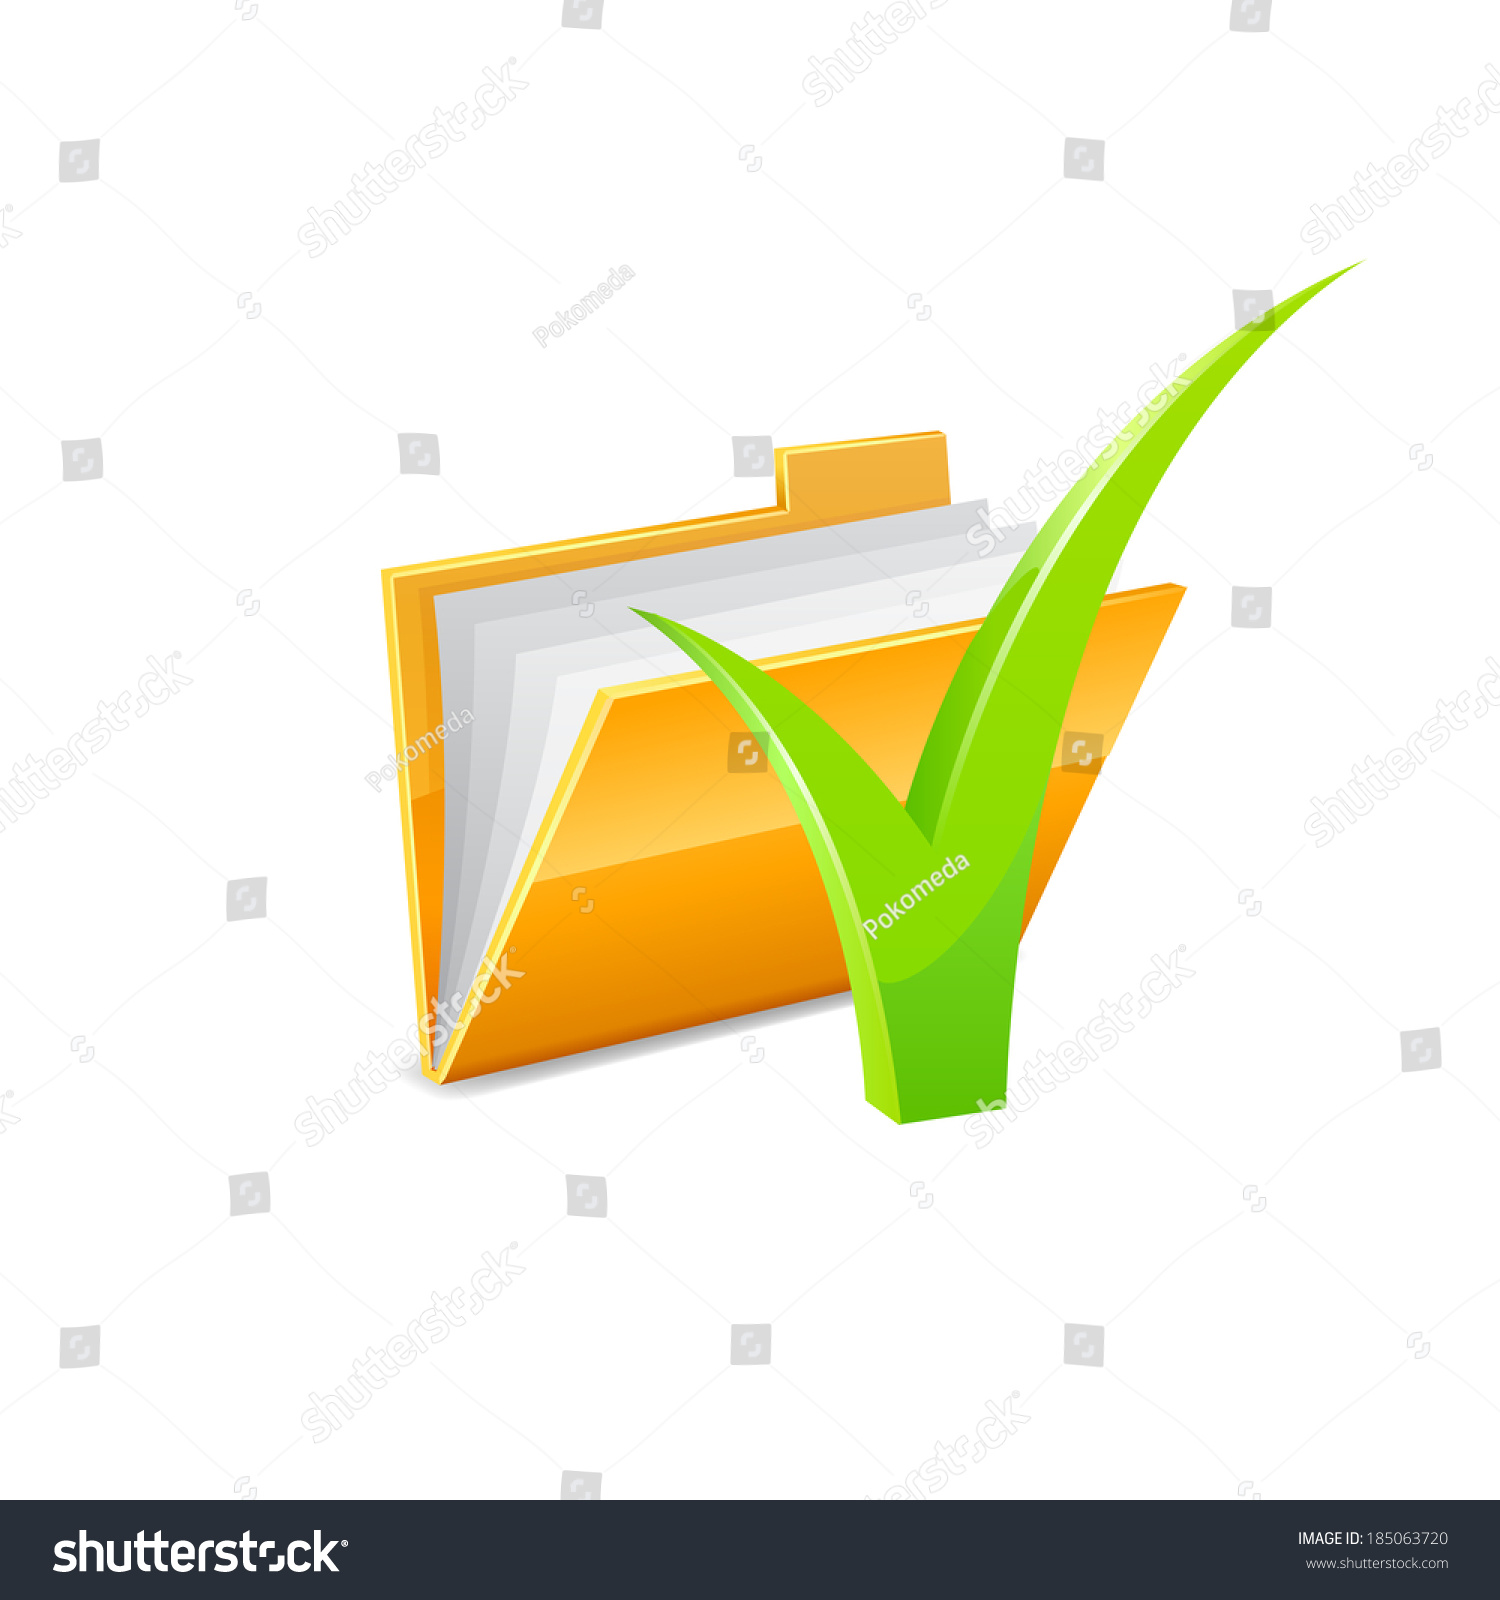 Yellow Folder Icon With Green Check Mark Isolated On White Raster